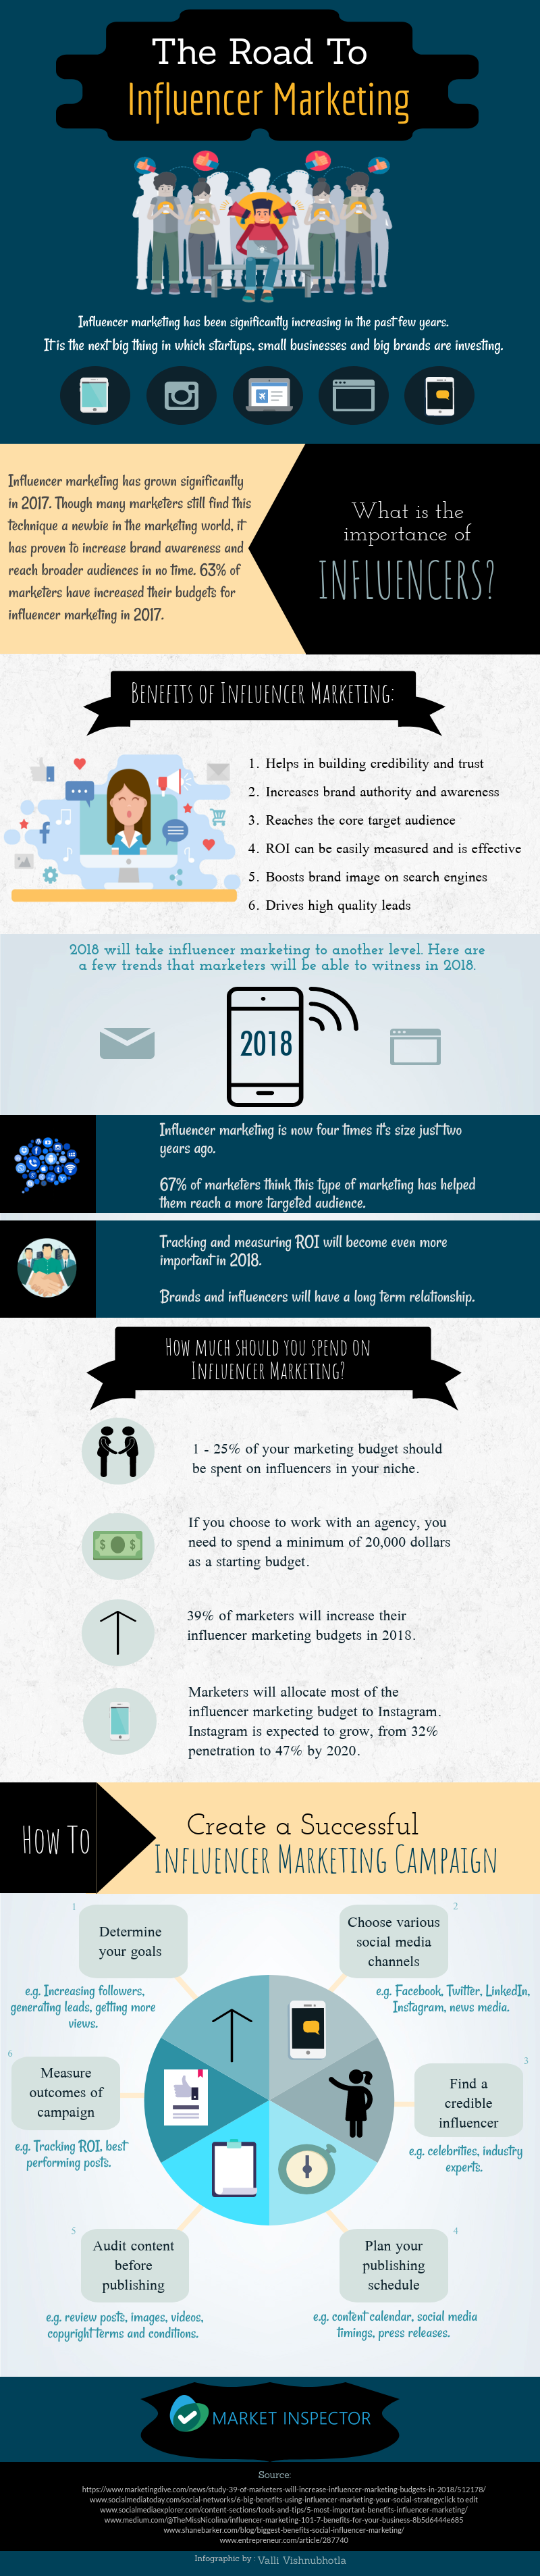 The Road to Influencer Marketing [Infographic]